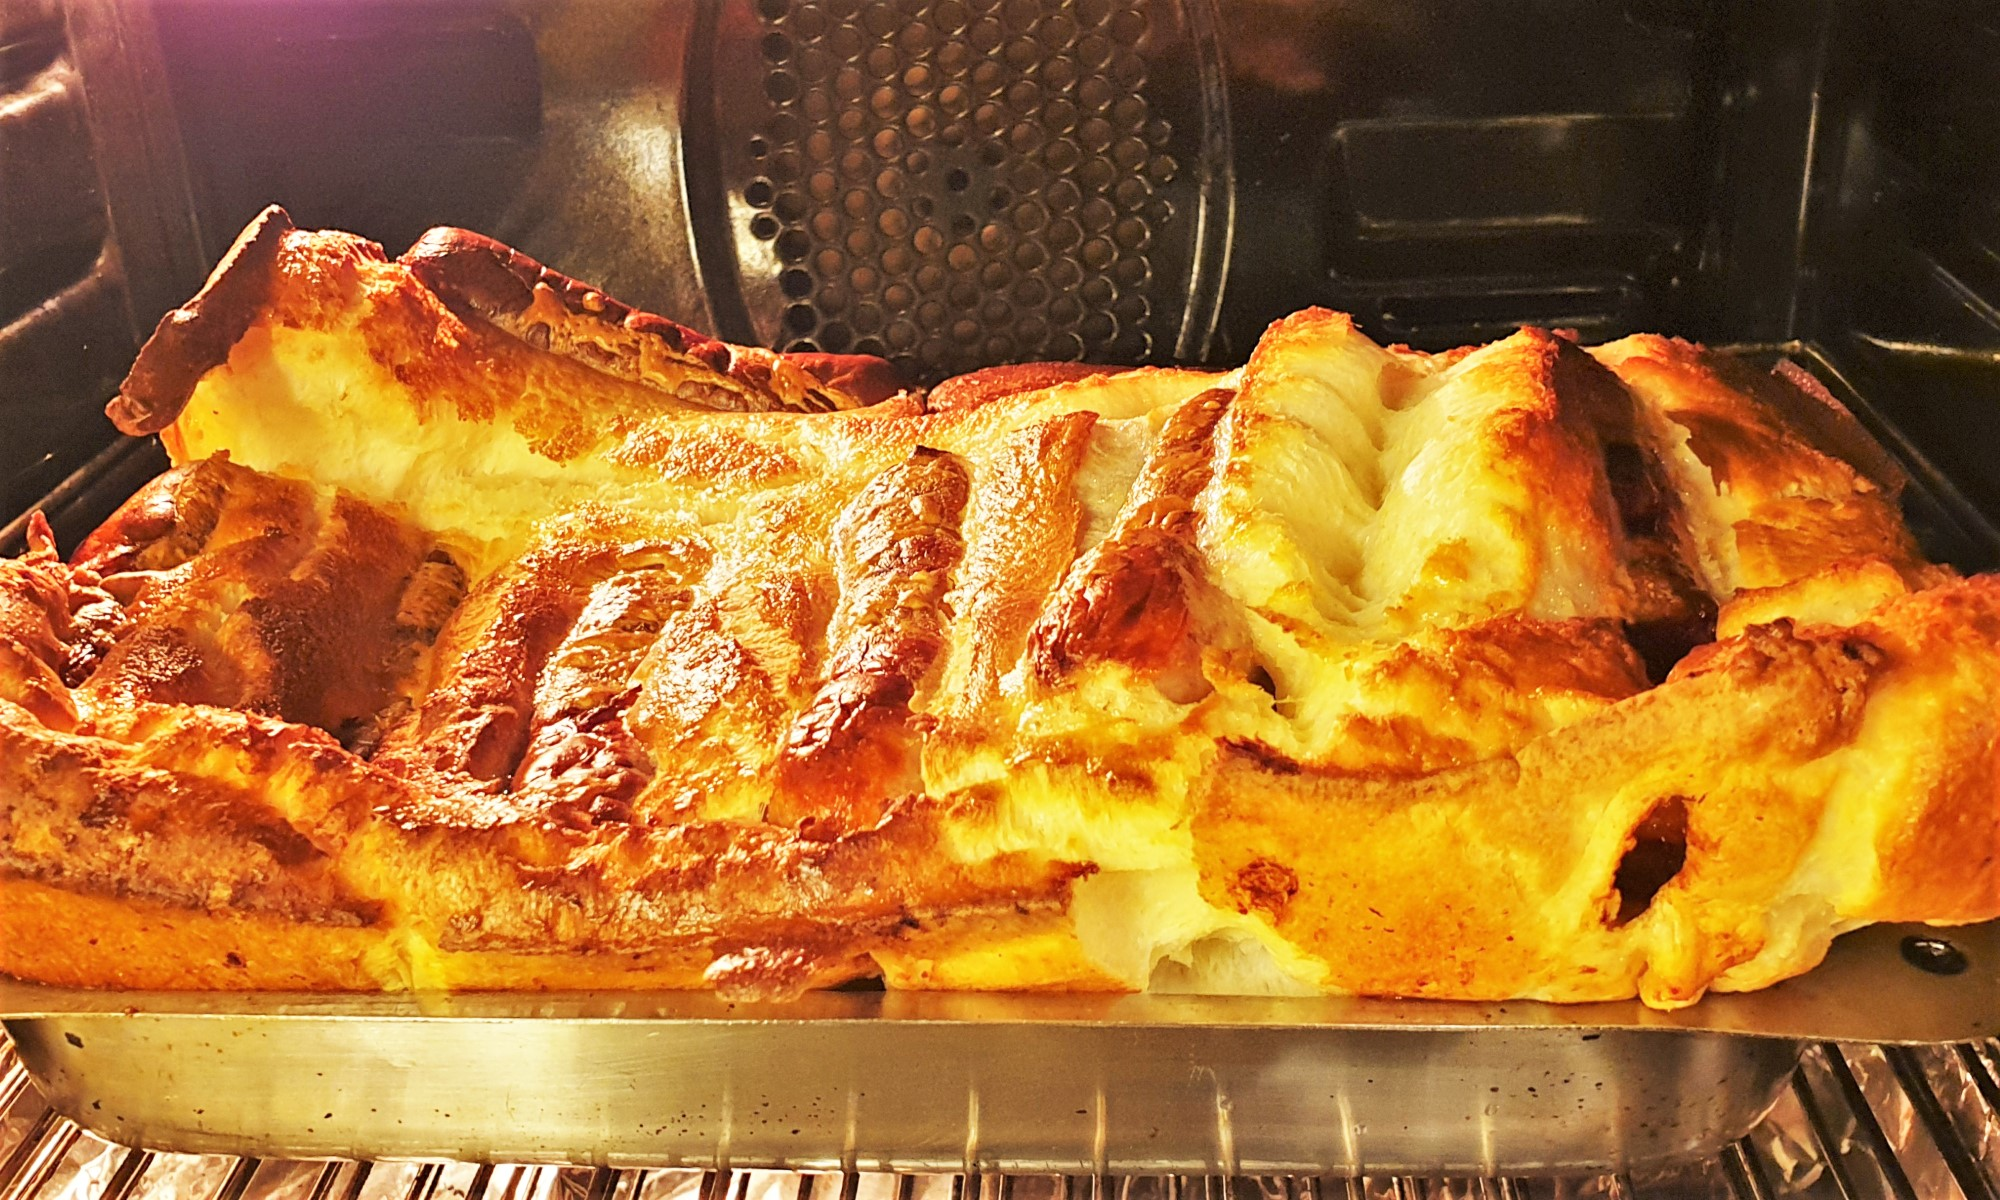 A dish of toad in the hole baking in the oven.